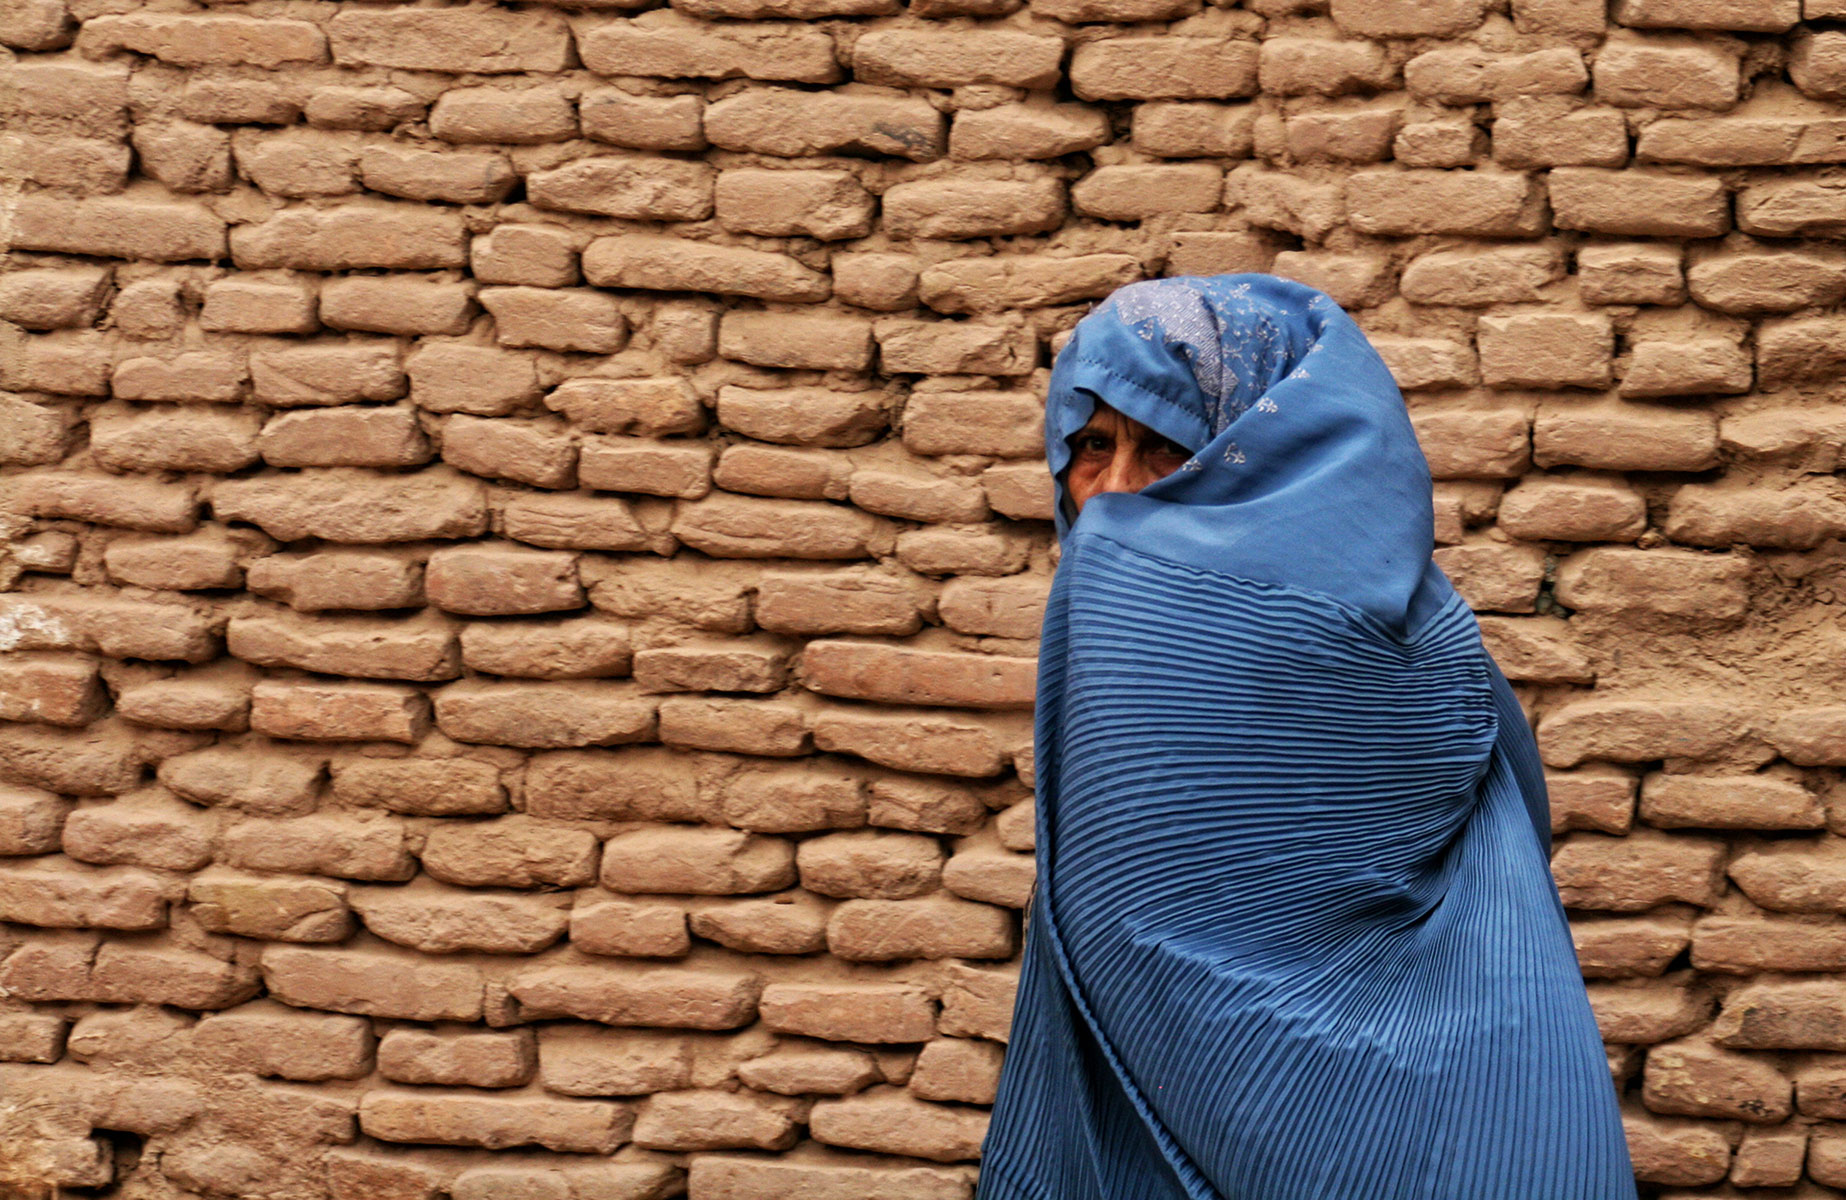 Peter Isackson, Daily Devils Dictionary, Afghanistan news, Afghan women, Taliban news, Afghanistan war news, Taliban government, Afghanistan womens rights, anti Taliban protests, Afghanistan media news